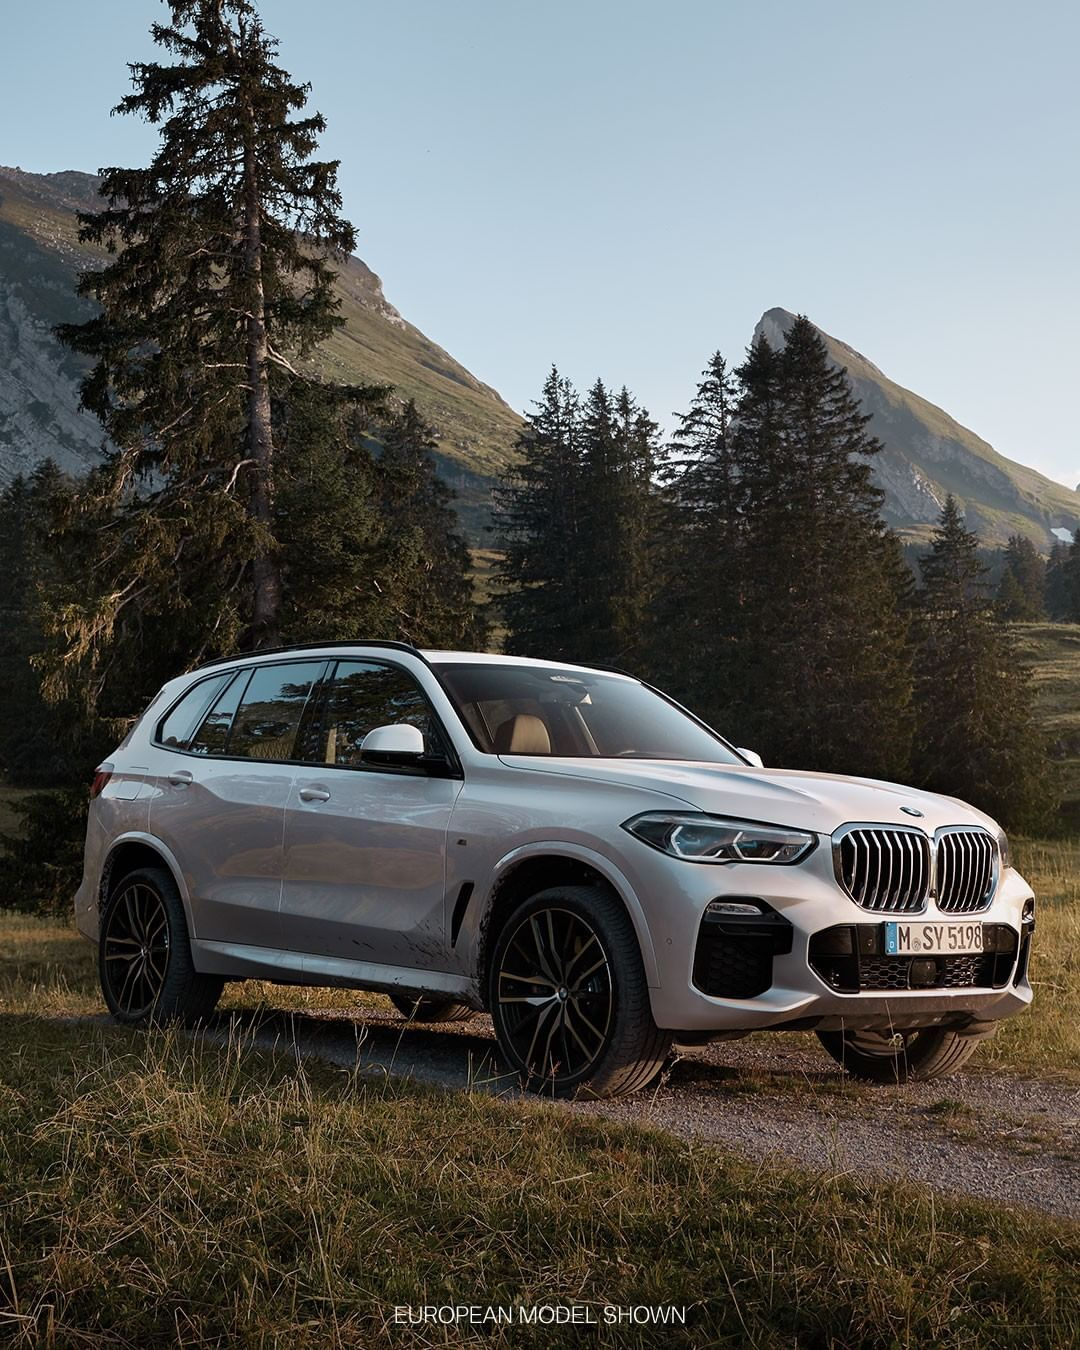 From Bmw Activity Is Its Middle Name The Original Sports Vehicle Returns In All New X5